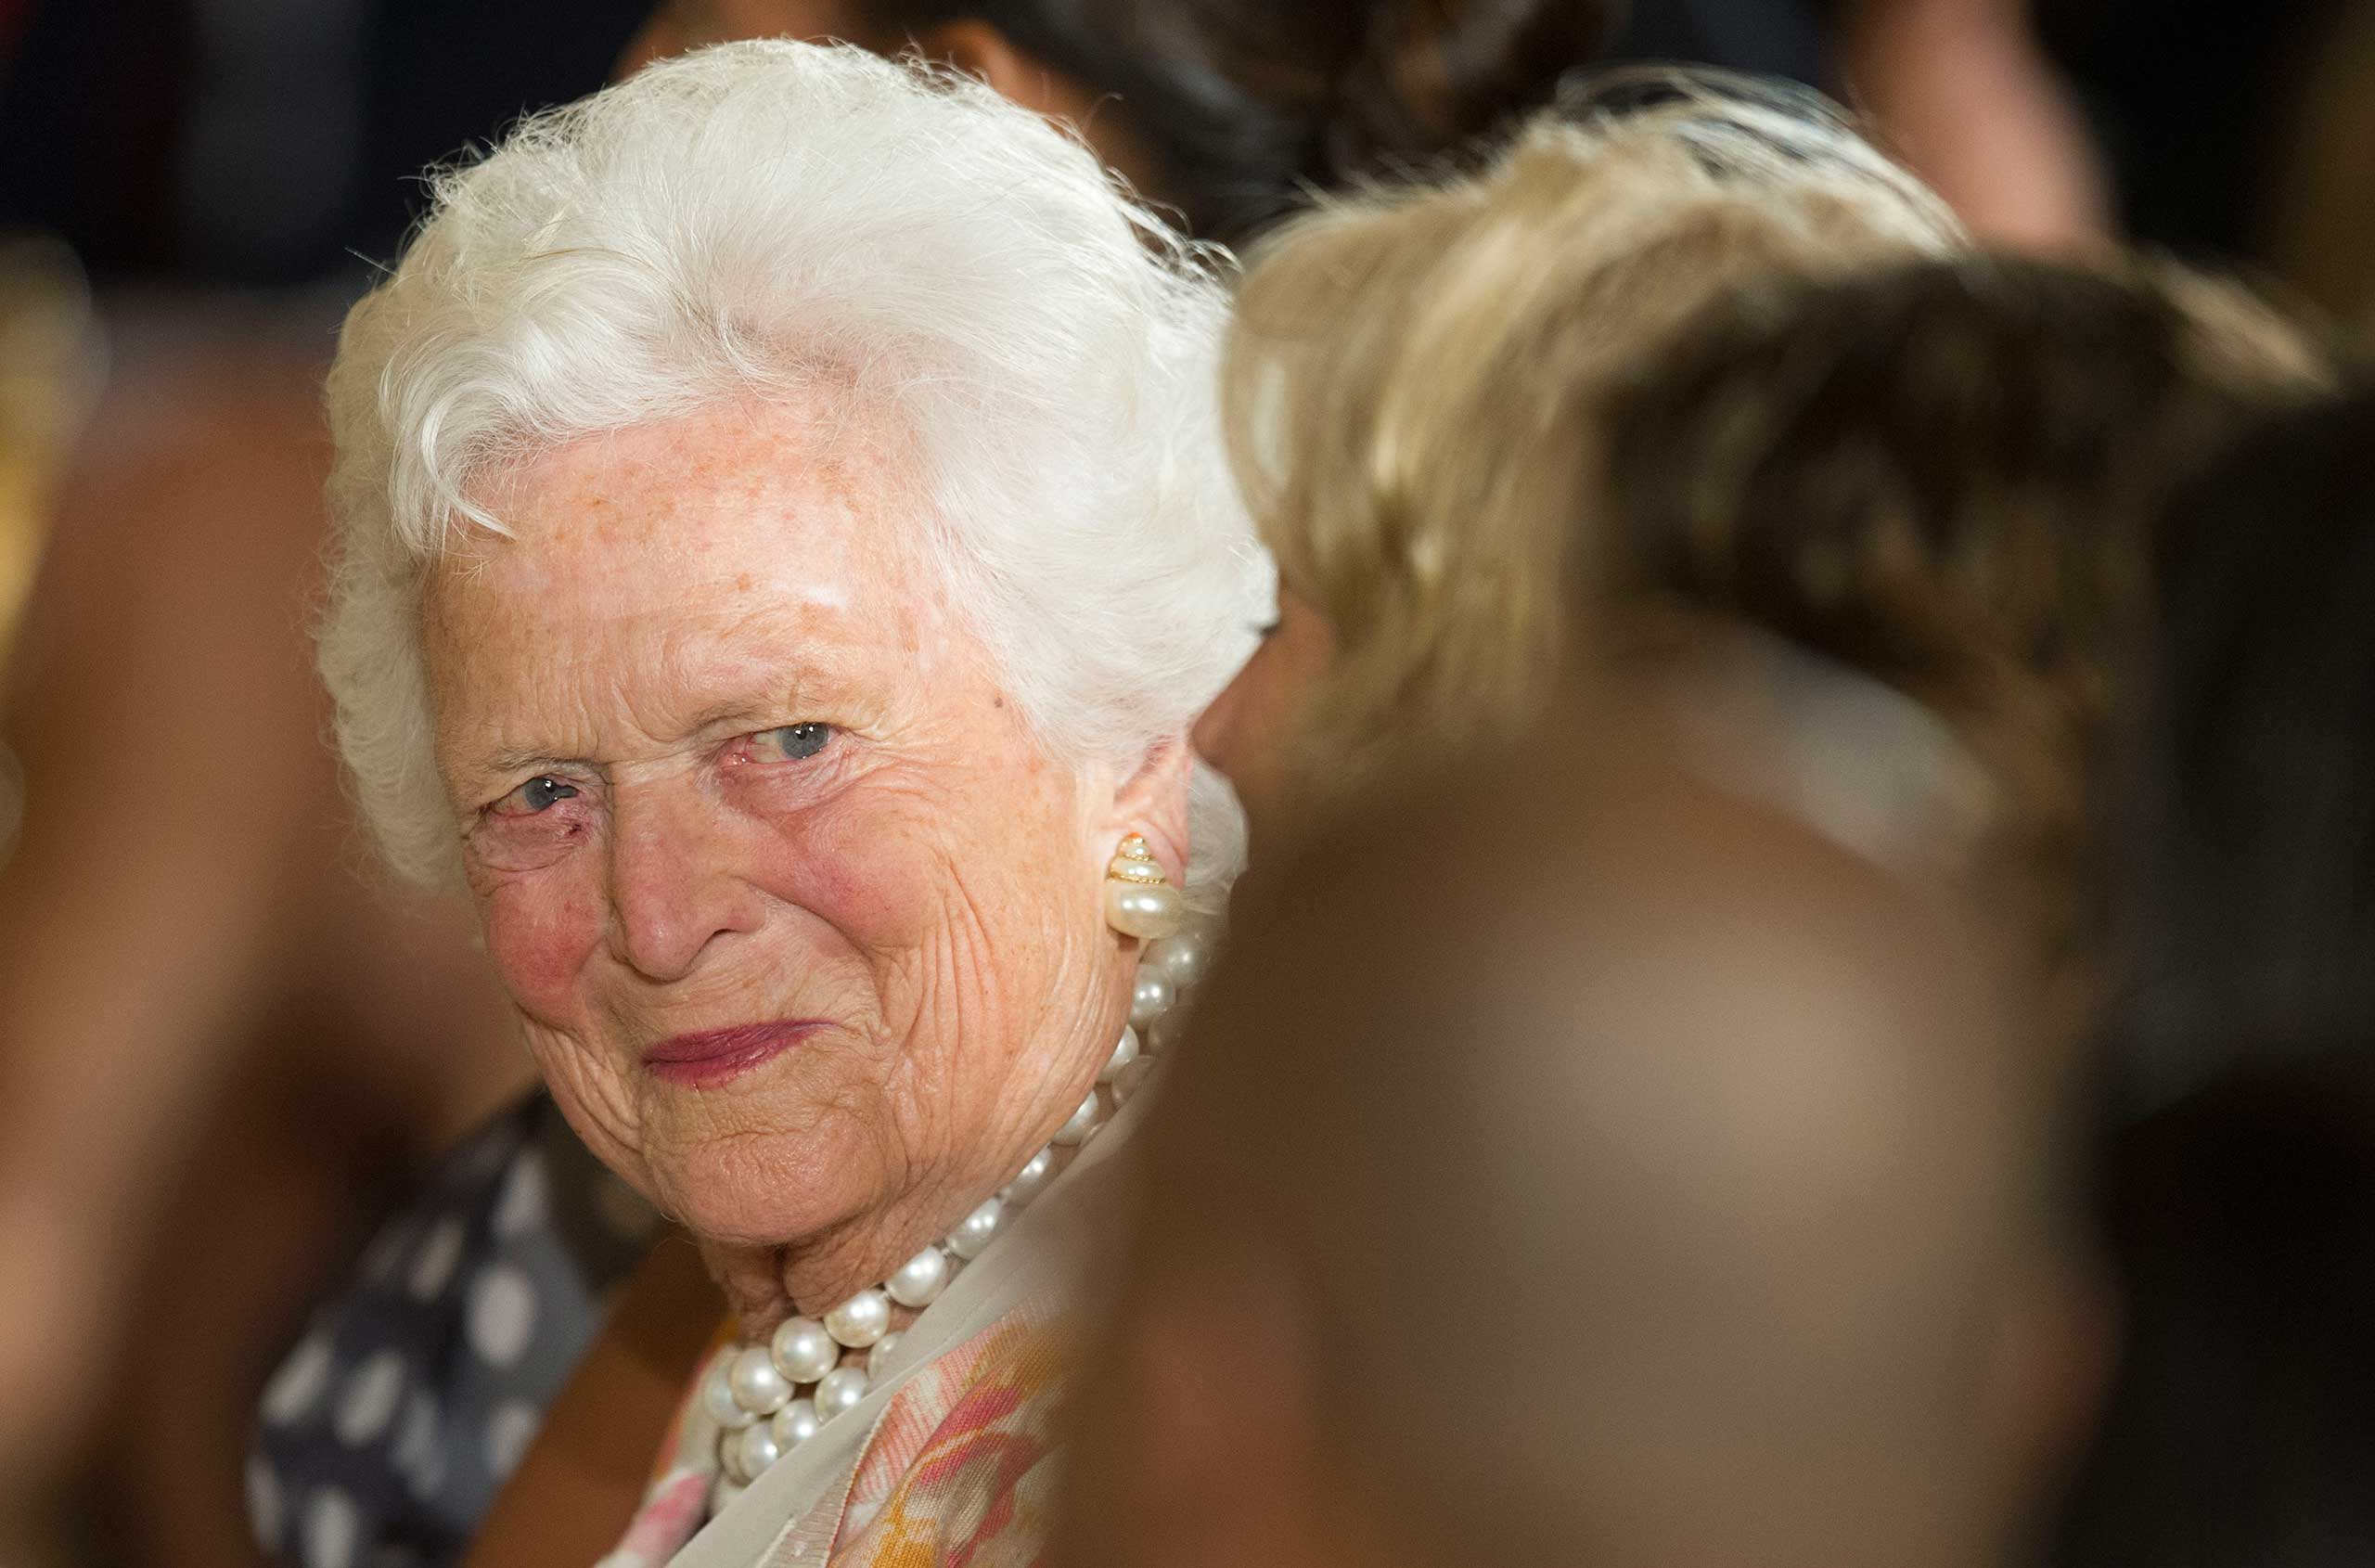 Former first lady Barbara Bush attends a White House ceremony to recognize the Points of Light volunteer program in Washington on July 15, 2013.